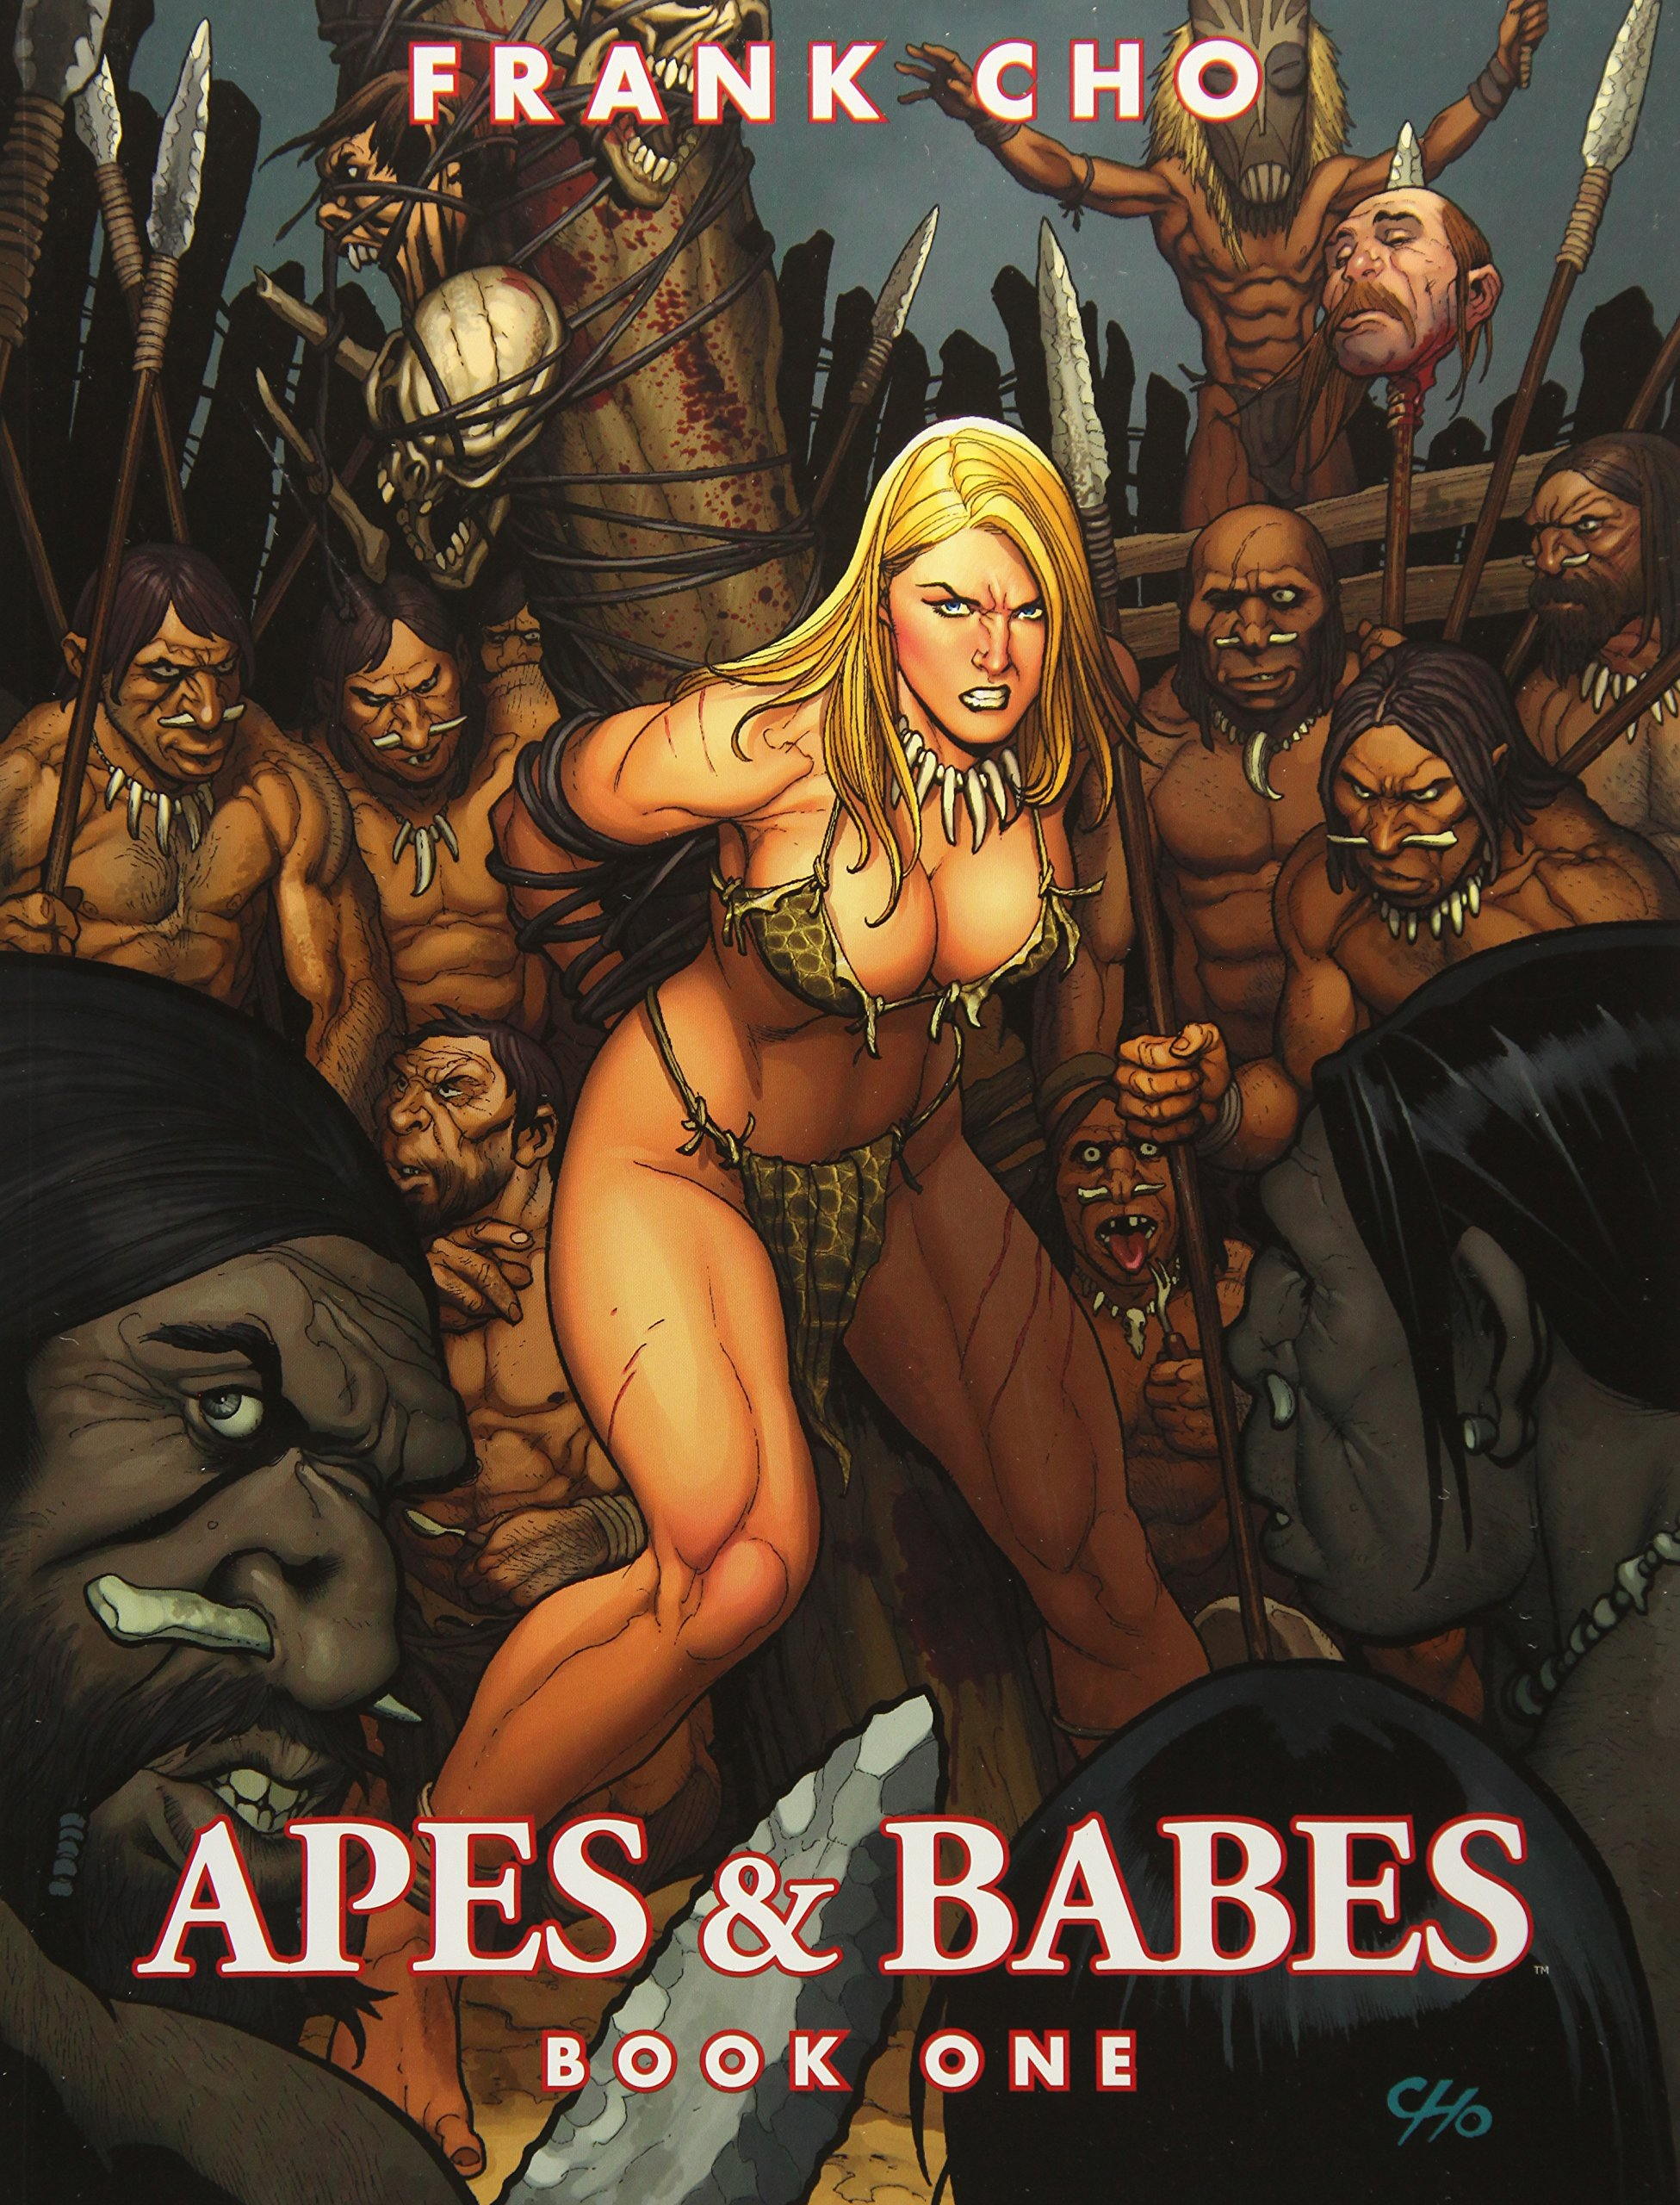 Image result for frank cho apes and babes